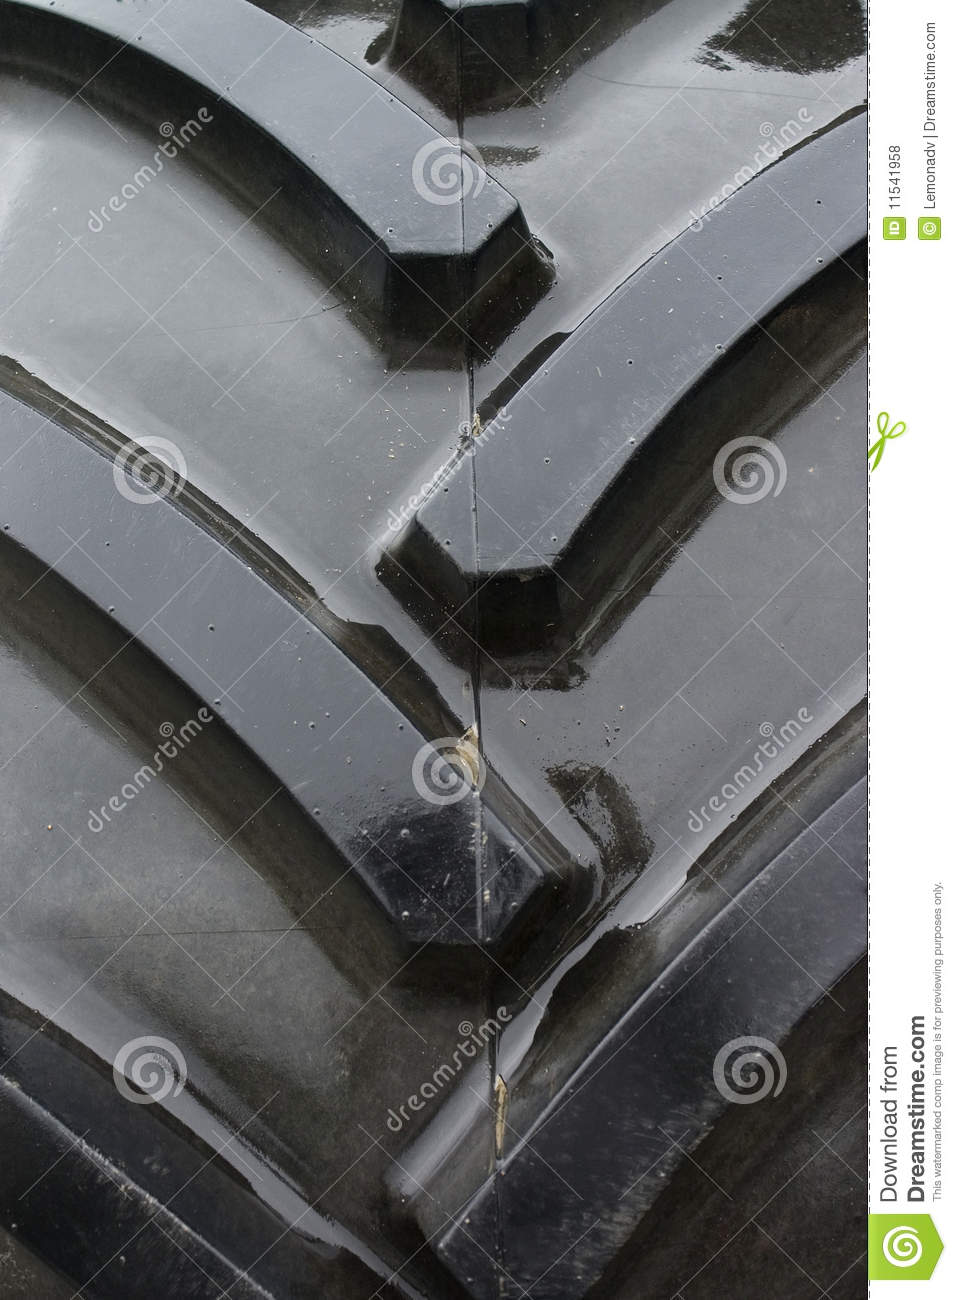 Tractor Tread Pattern : Tractor tire tread background stock photo image of